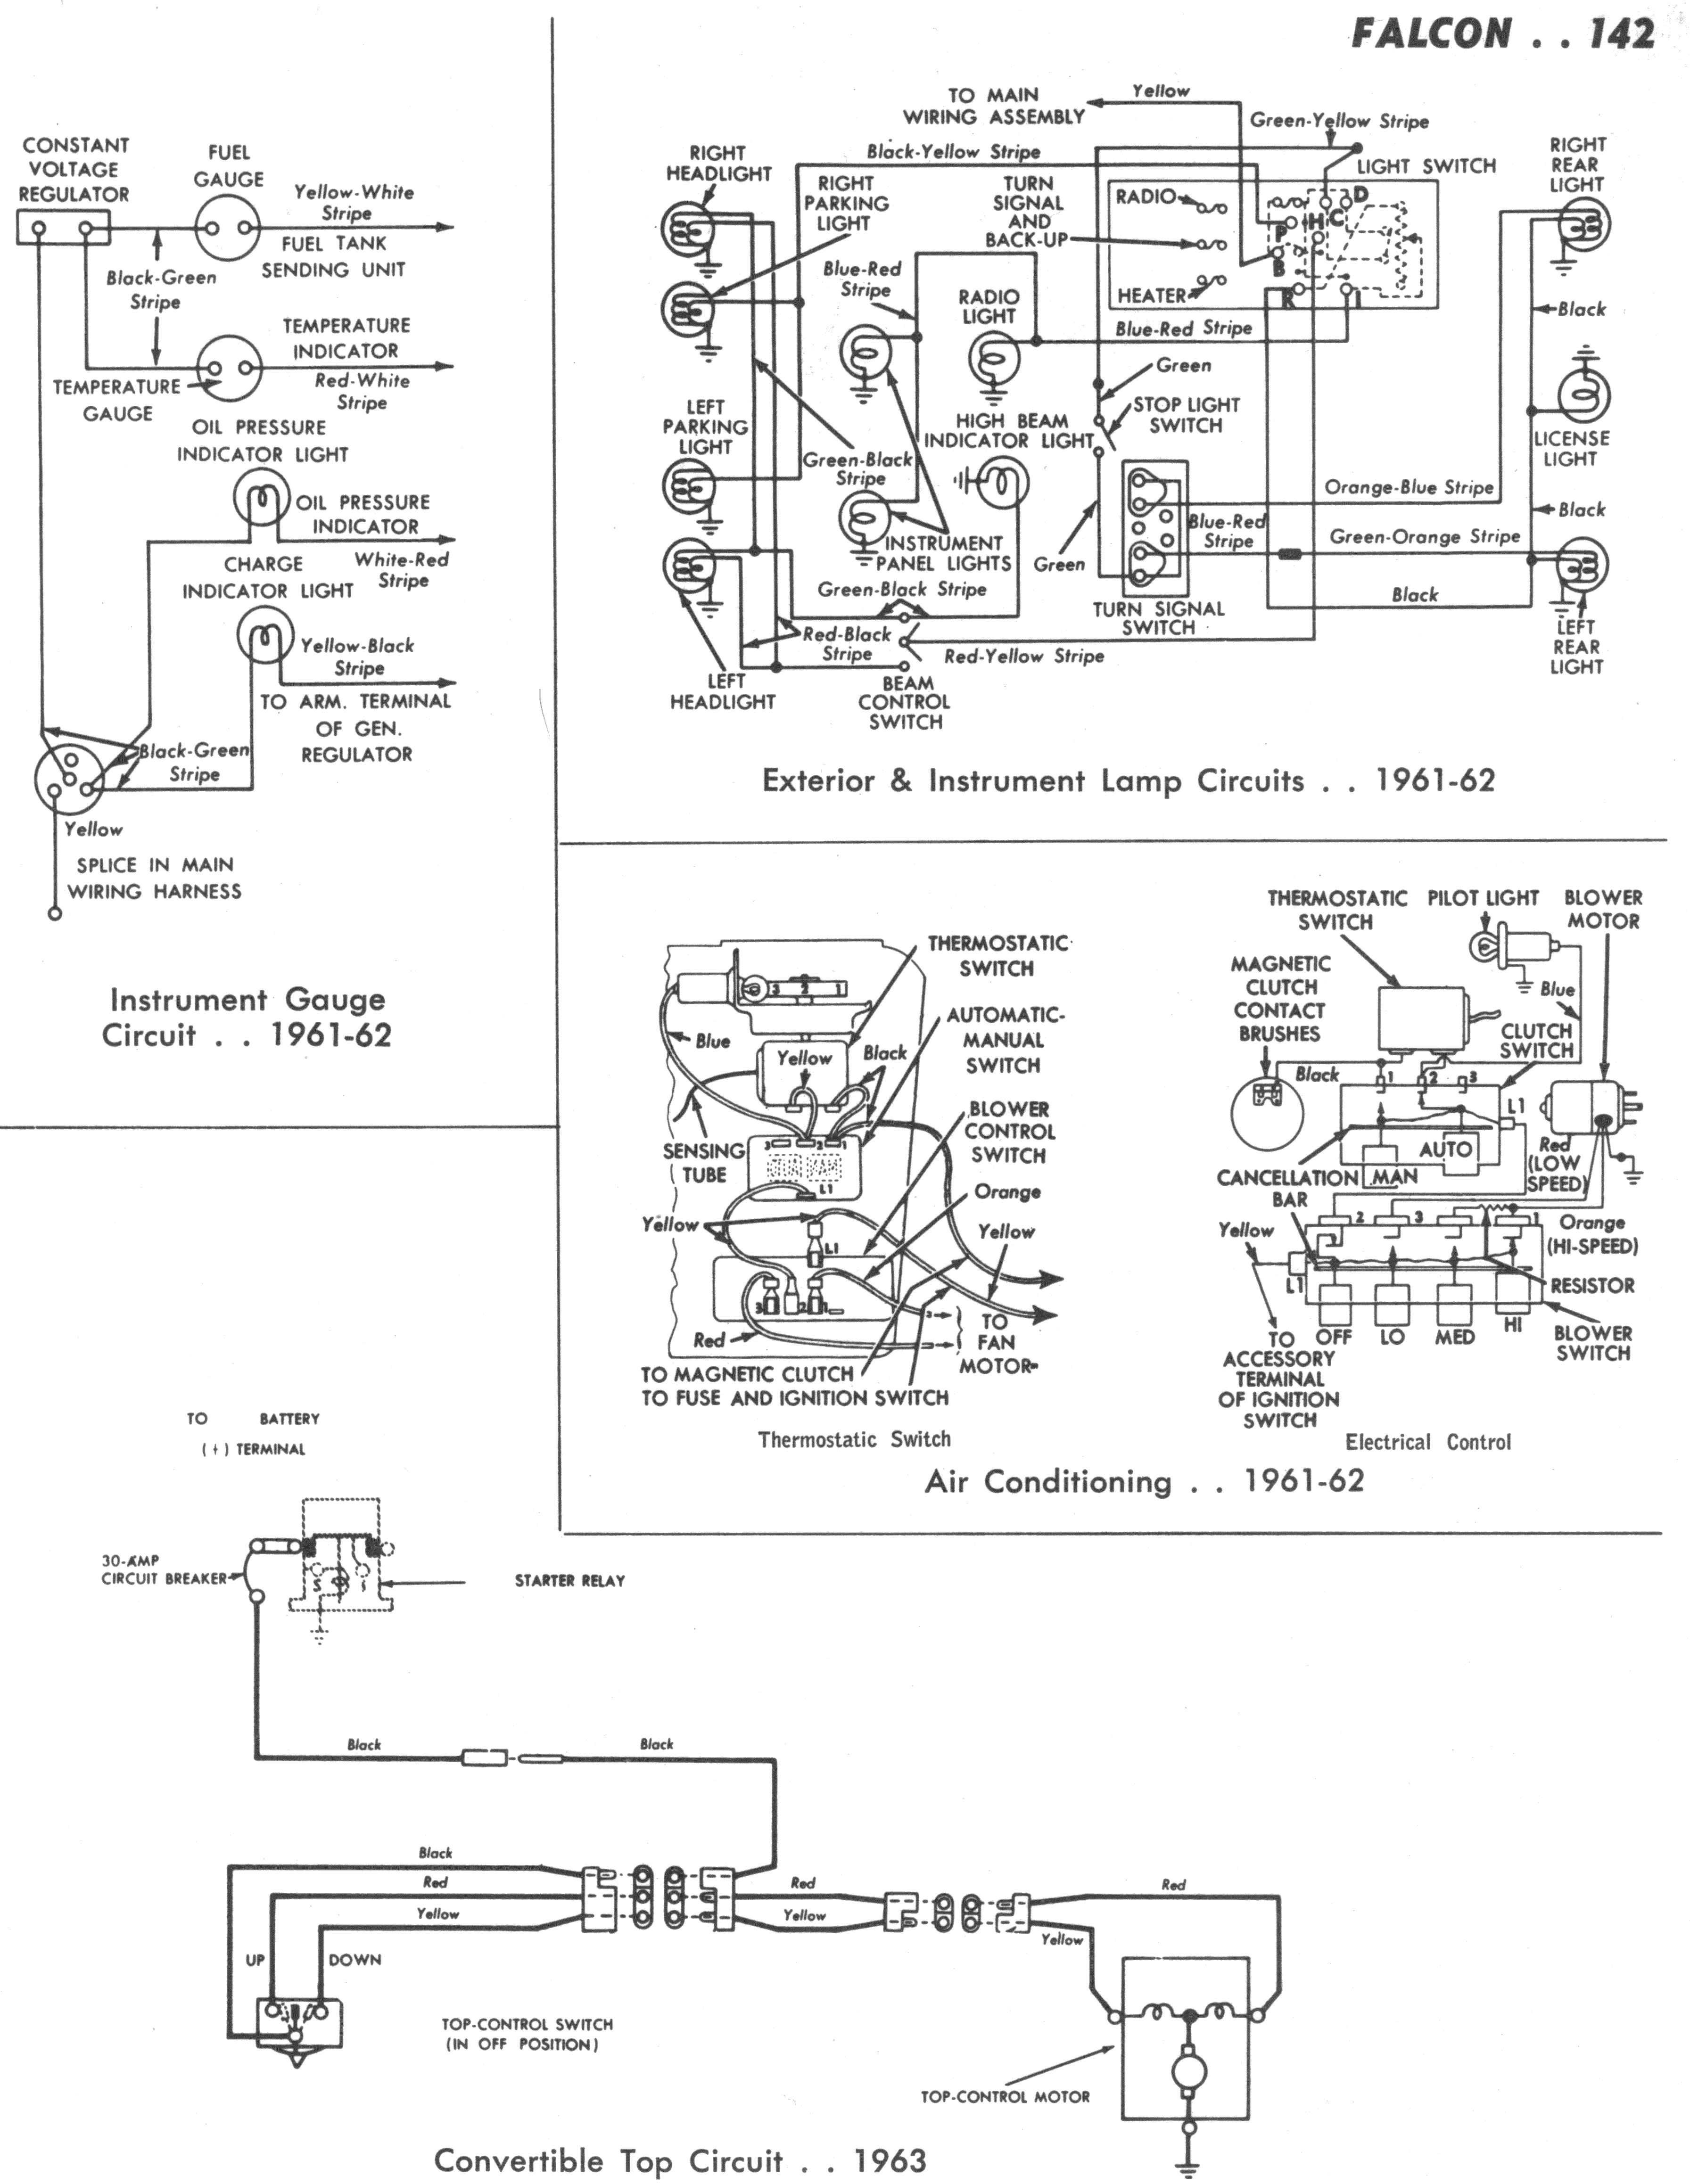 falcon wiring diagrams rh falconfaq dyndns org 1964 ford falcon tail light wiring diagram 1964 ford falcon tail light wiring diagram